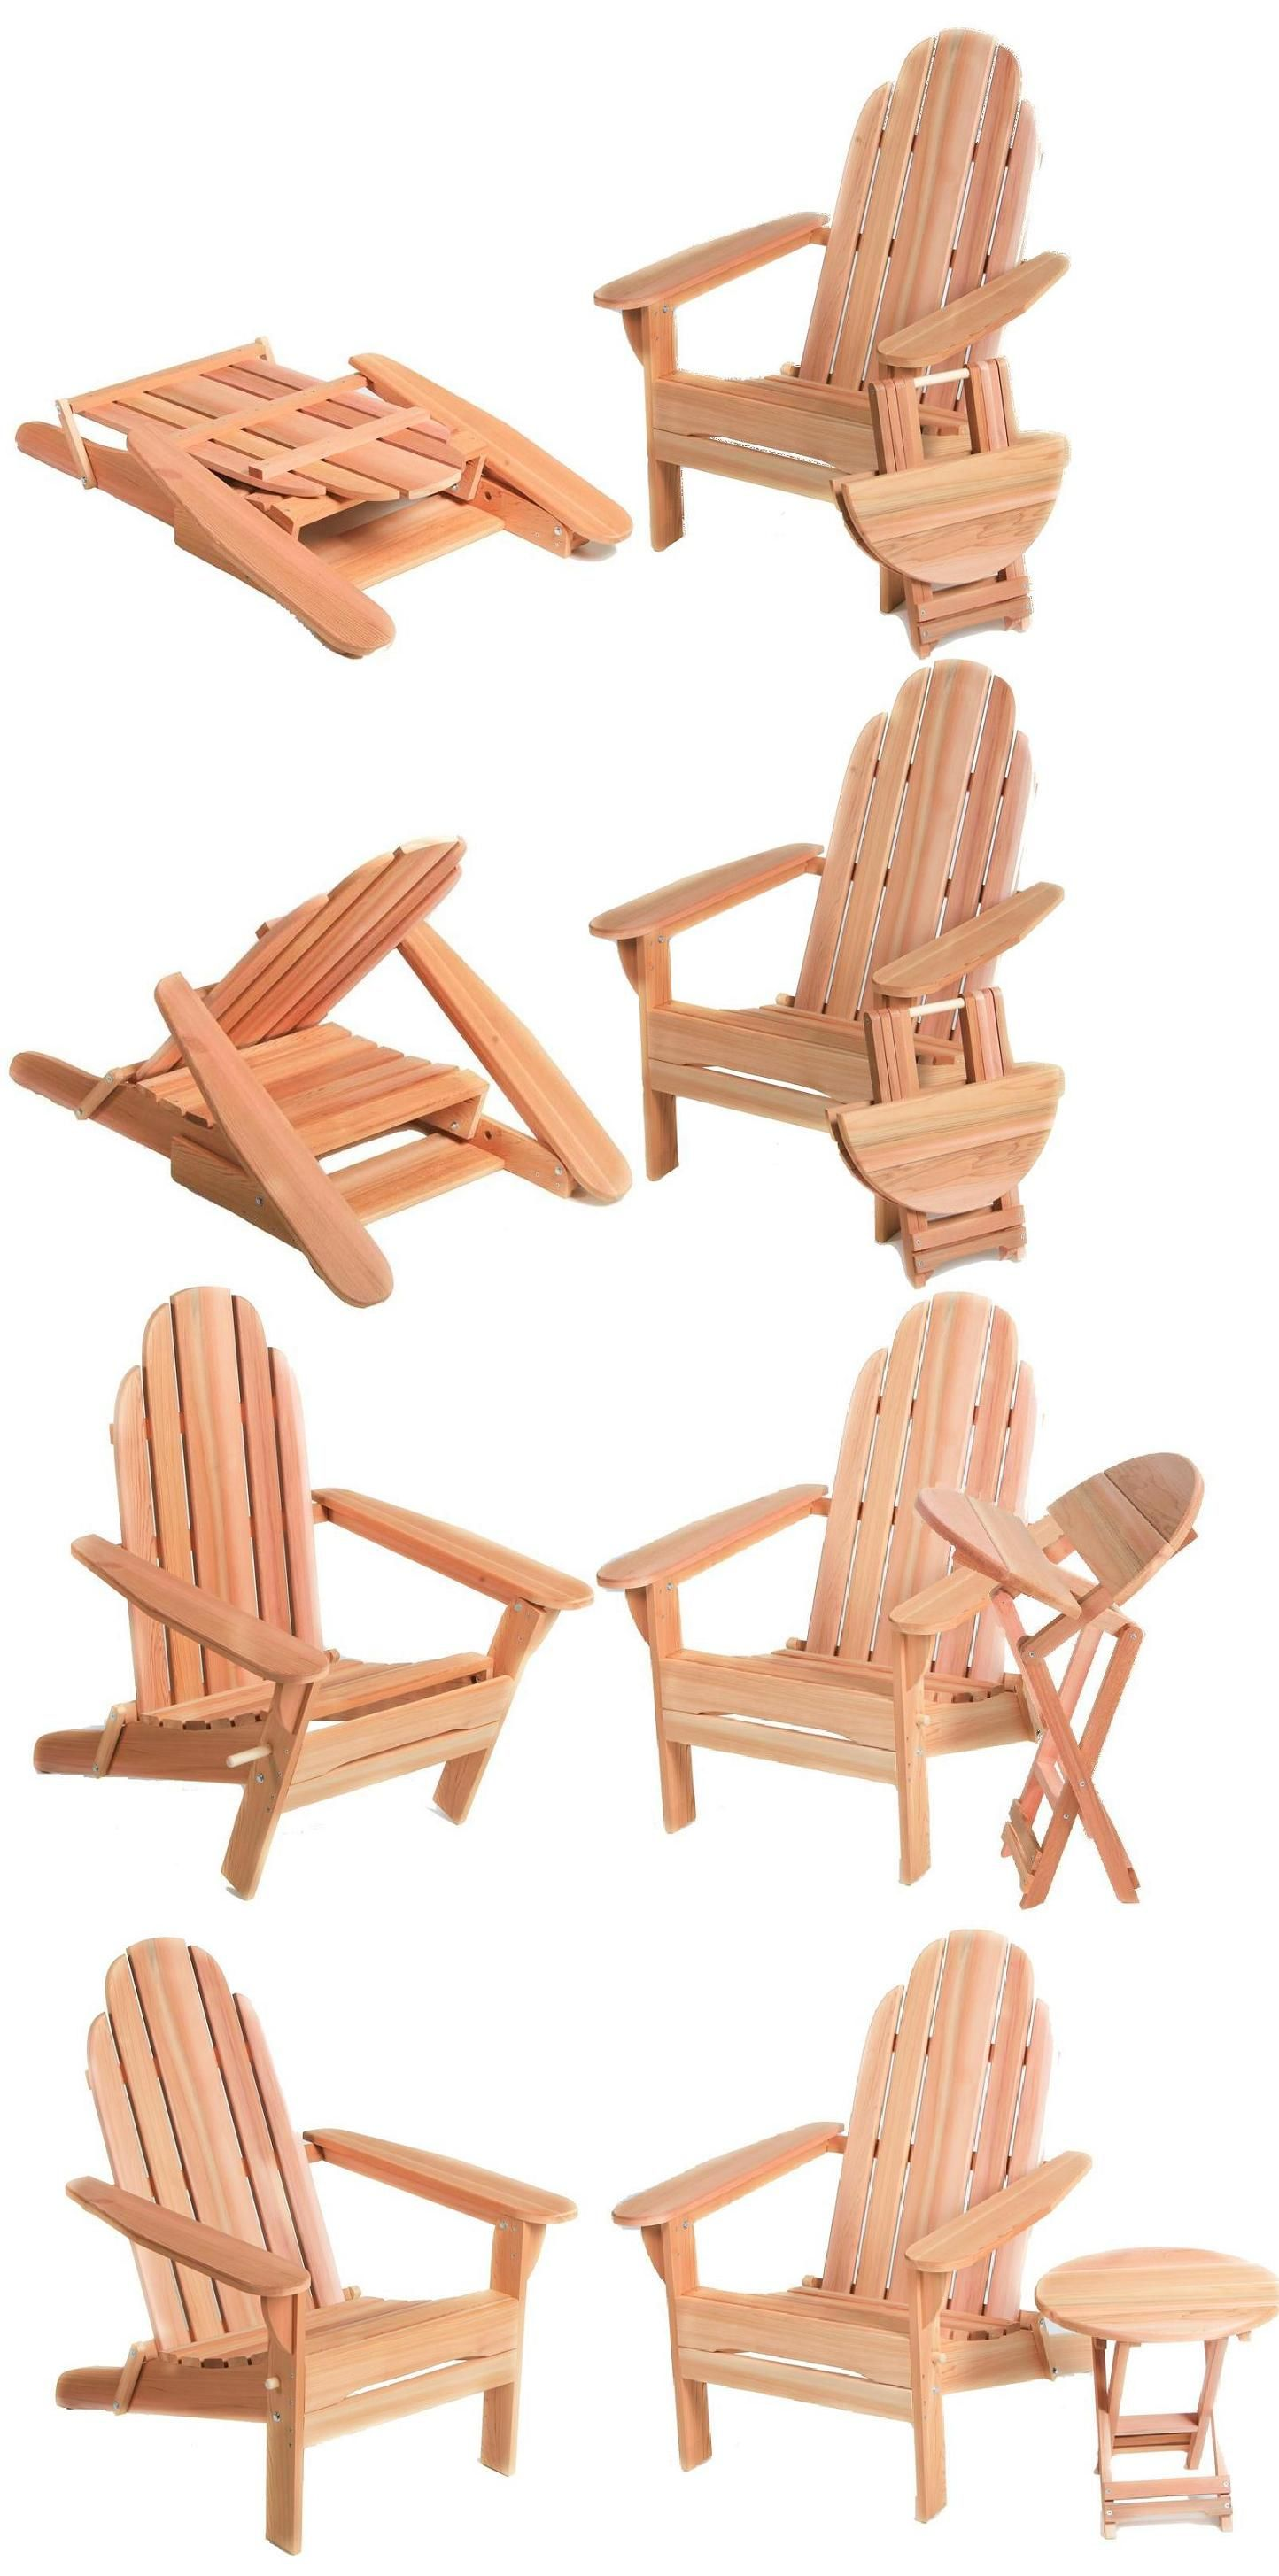 Folding Adirondack Chairs Table wood working ideas